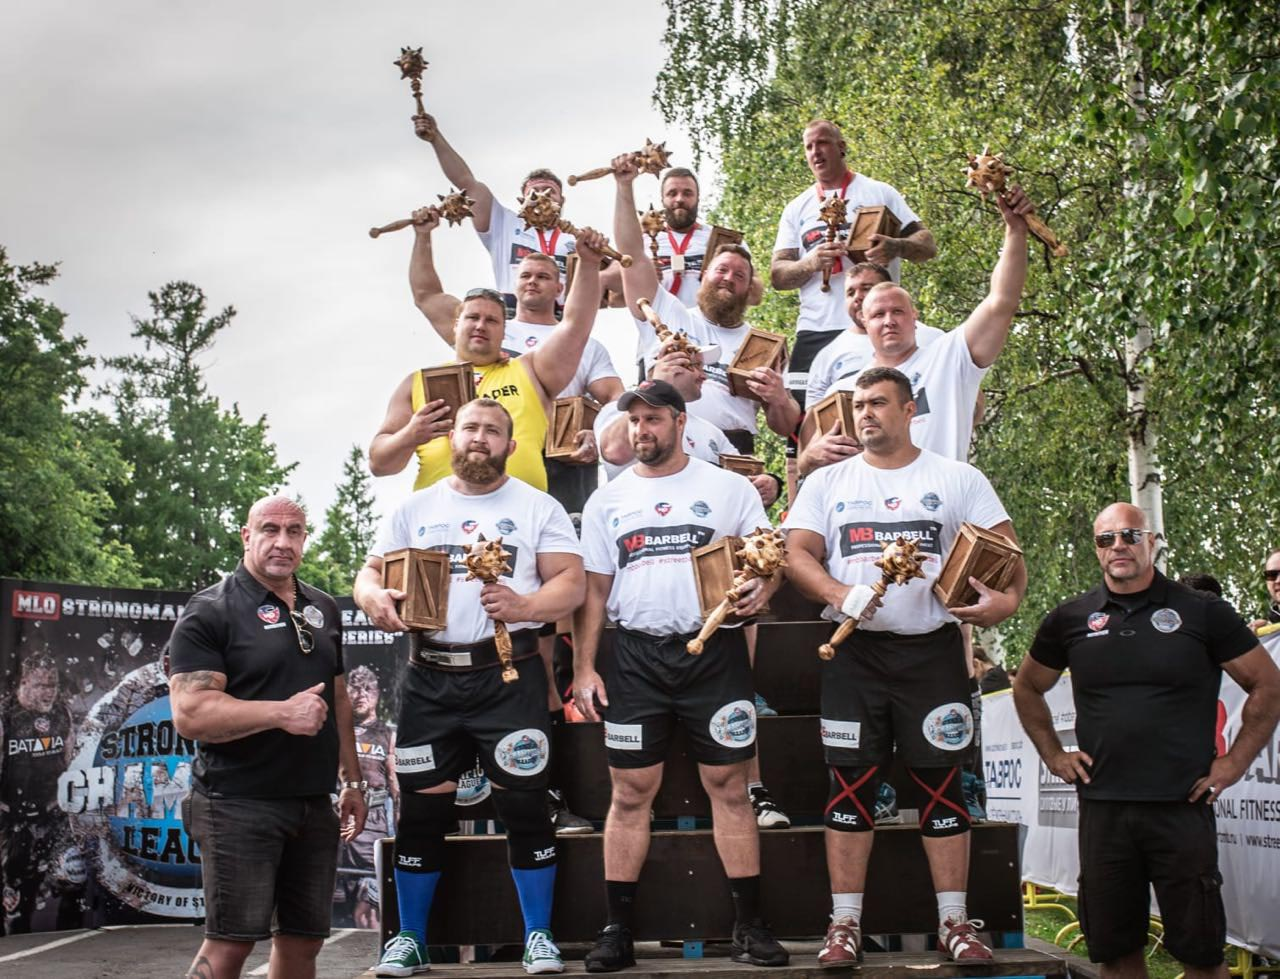 Aivars Smaukstelis adds MLO SCL RUSSIA 2019 to his gold trophy collection